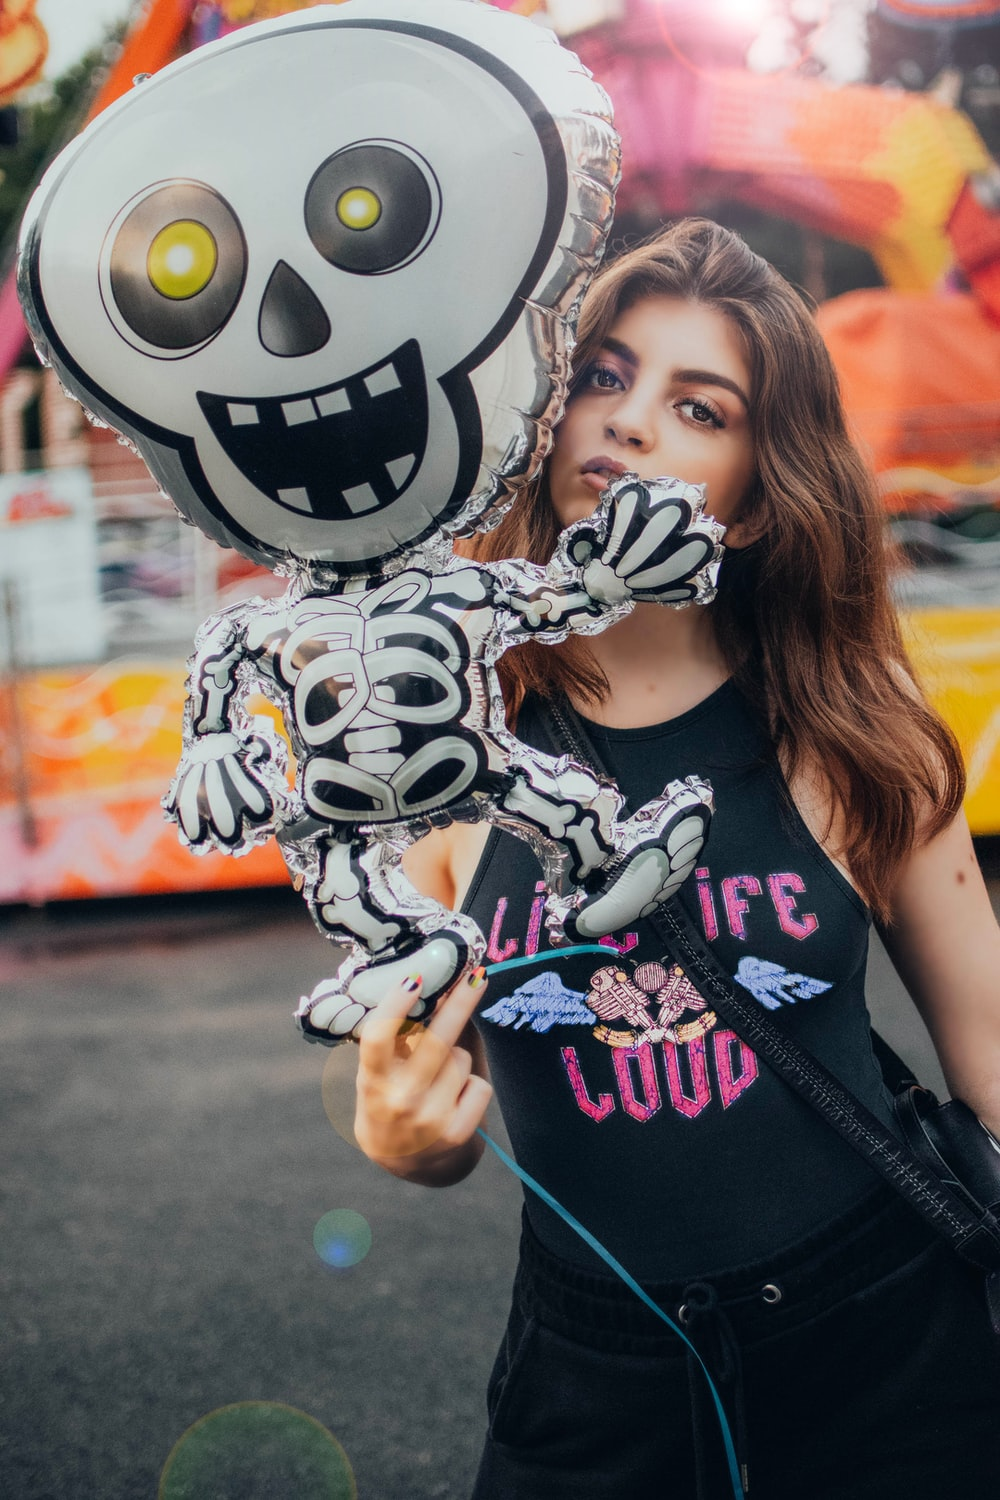 woman in black tank top holding white and black skull print balloon